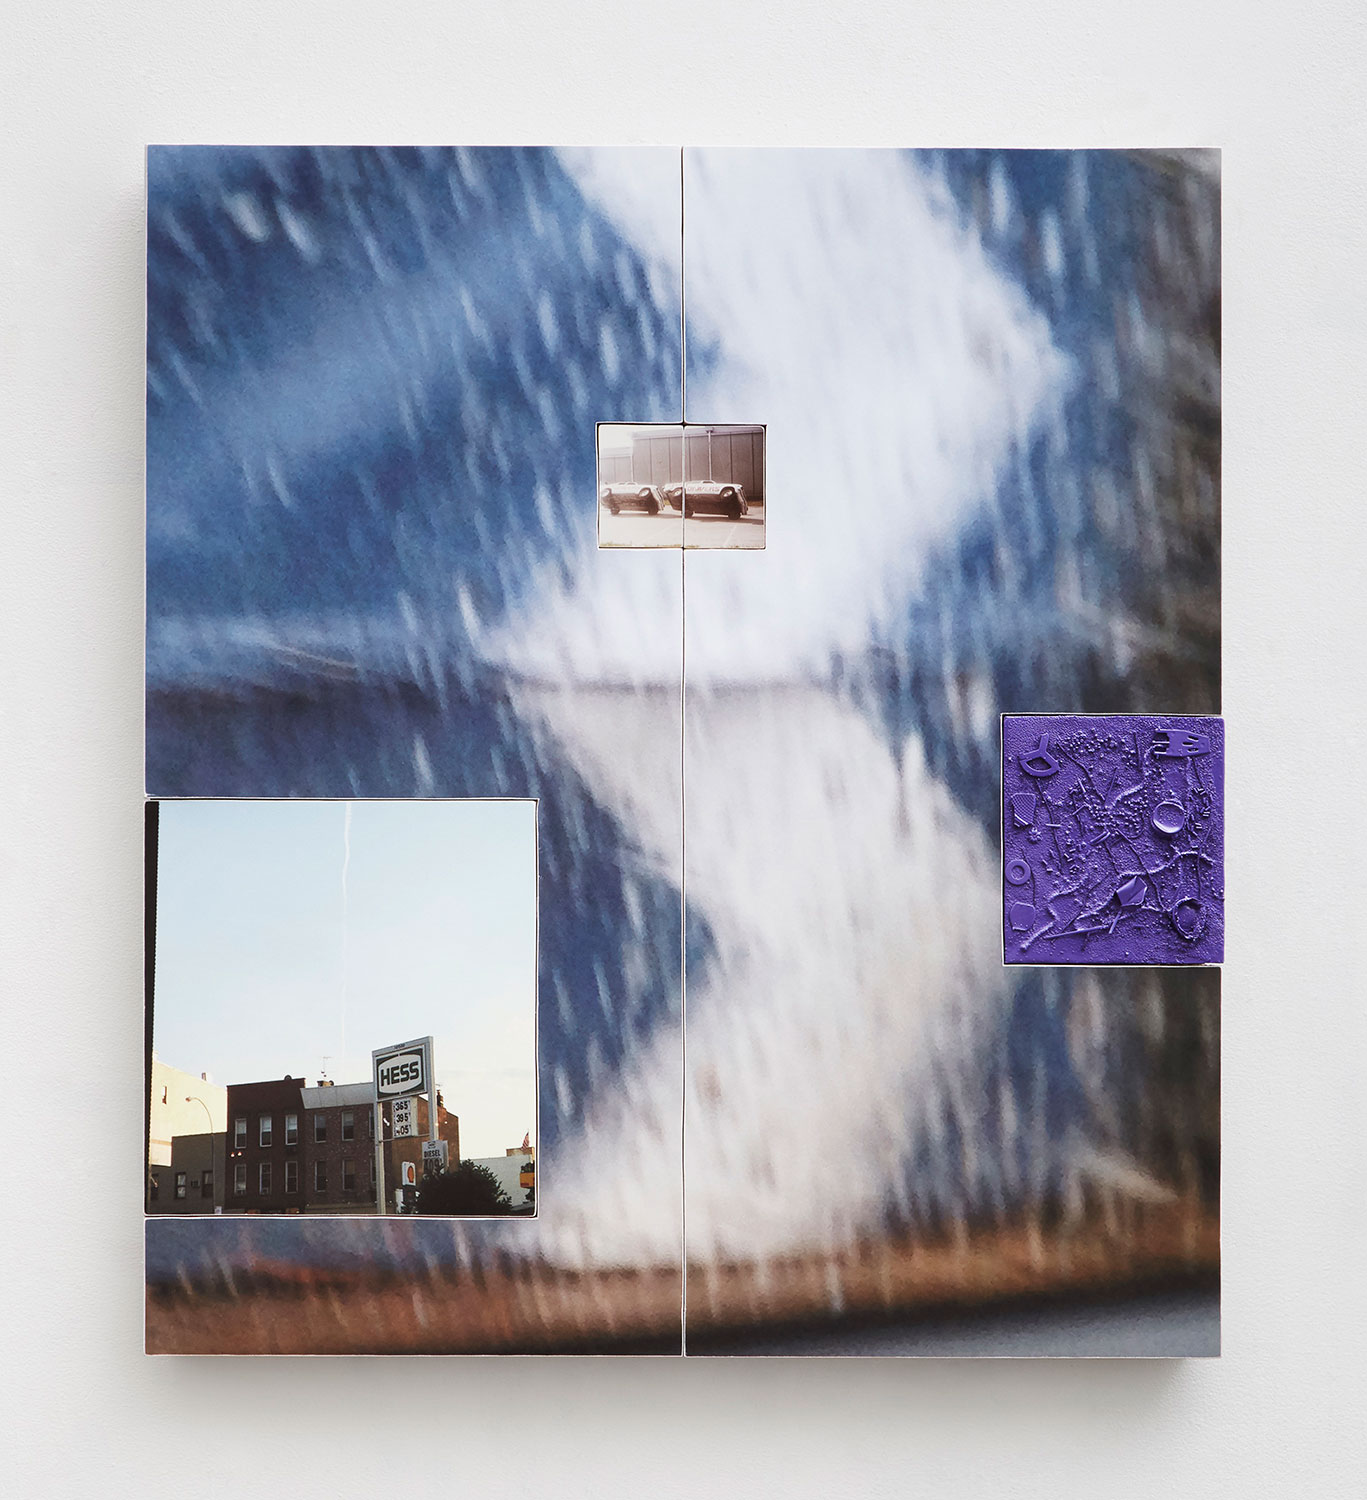 Three photographs, arranged in a triangle, layered atop a larger detail photograph